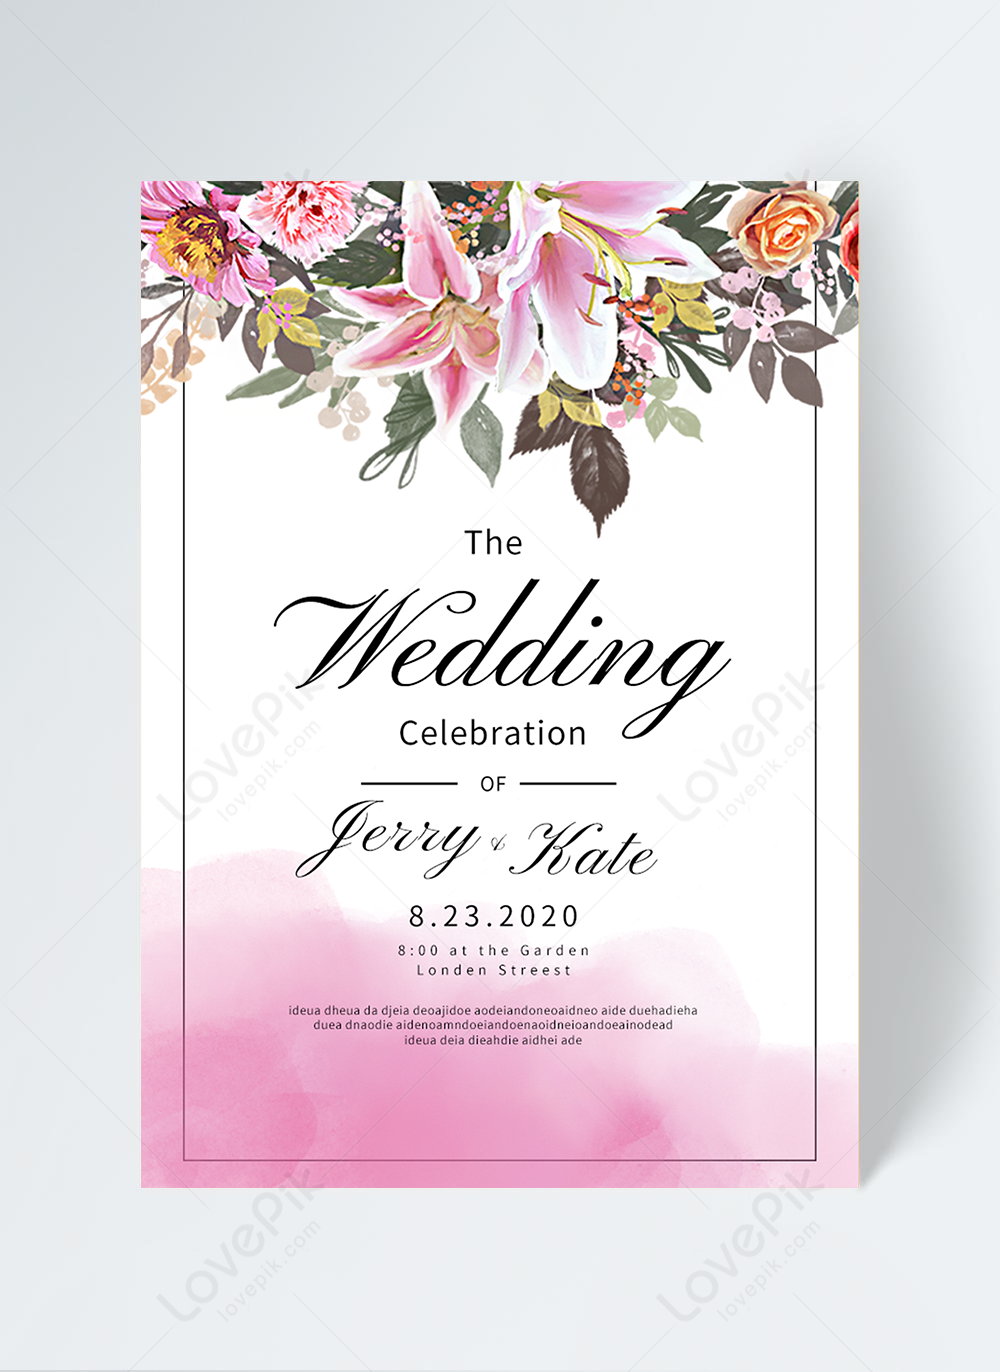 Pink watercolor flowers wedding invitation template image_picture free  download 465445446_lovepik.com